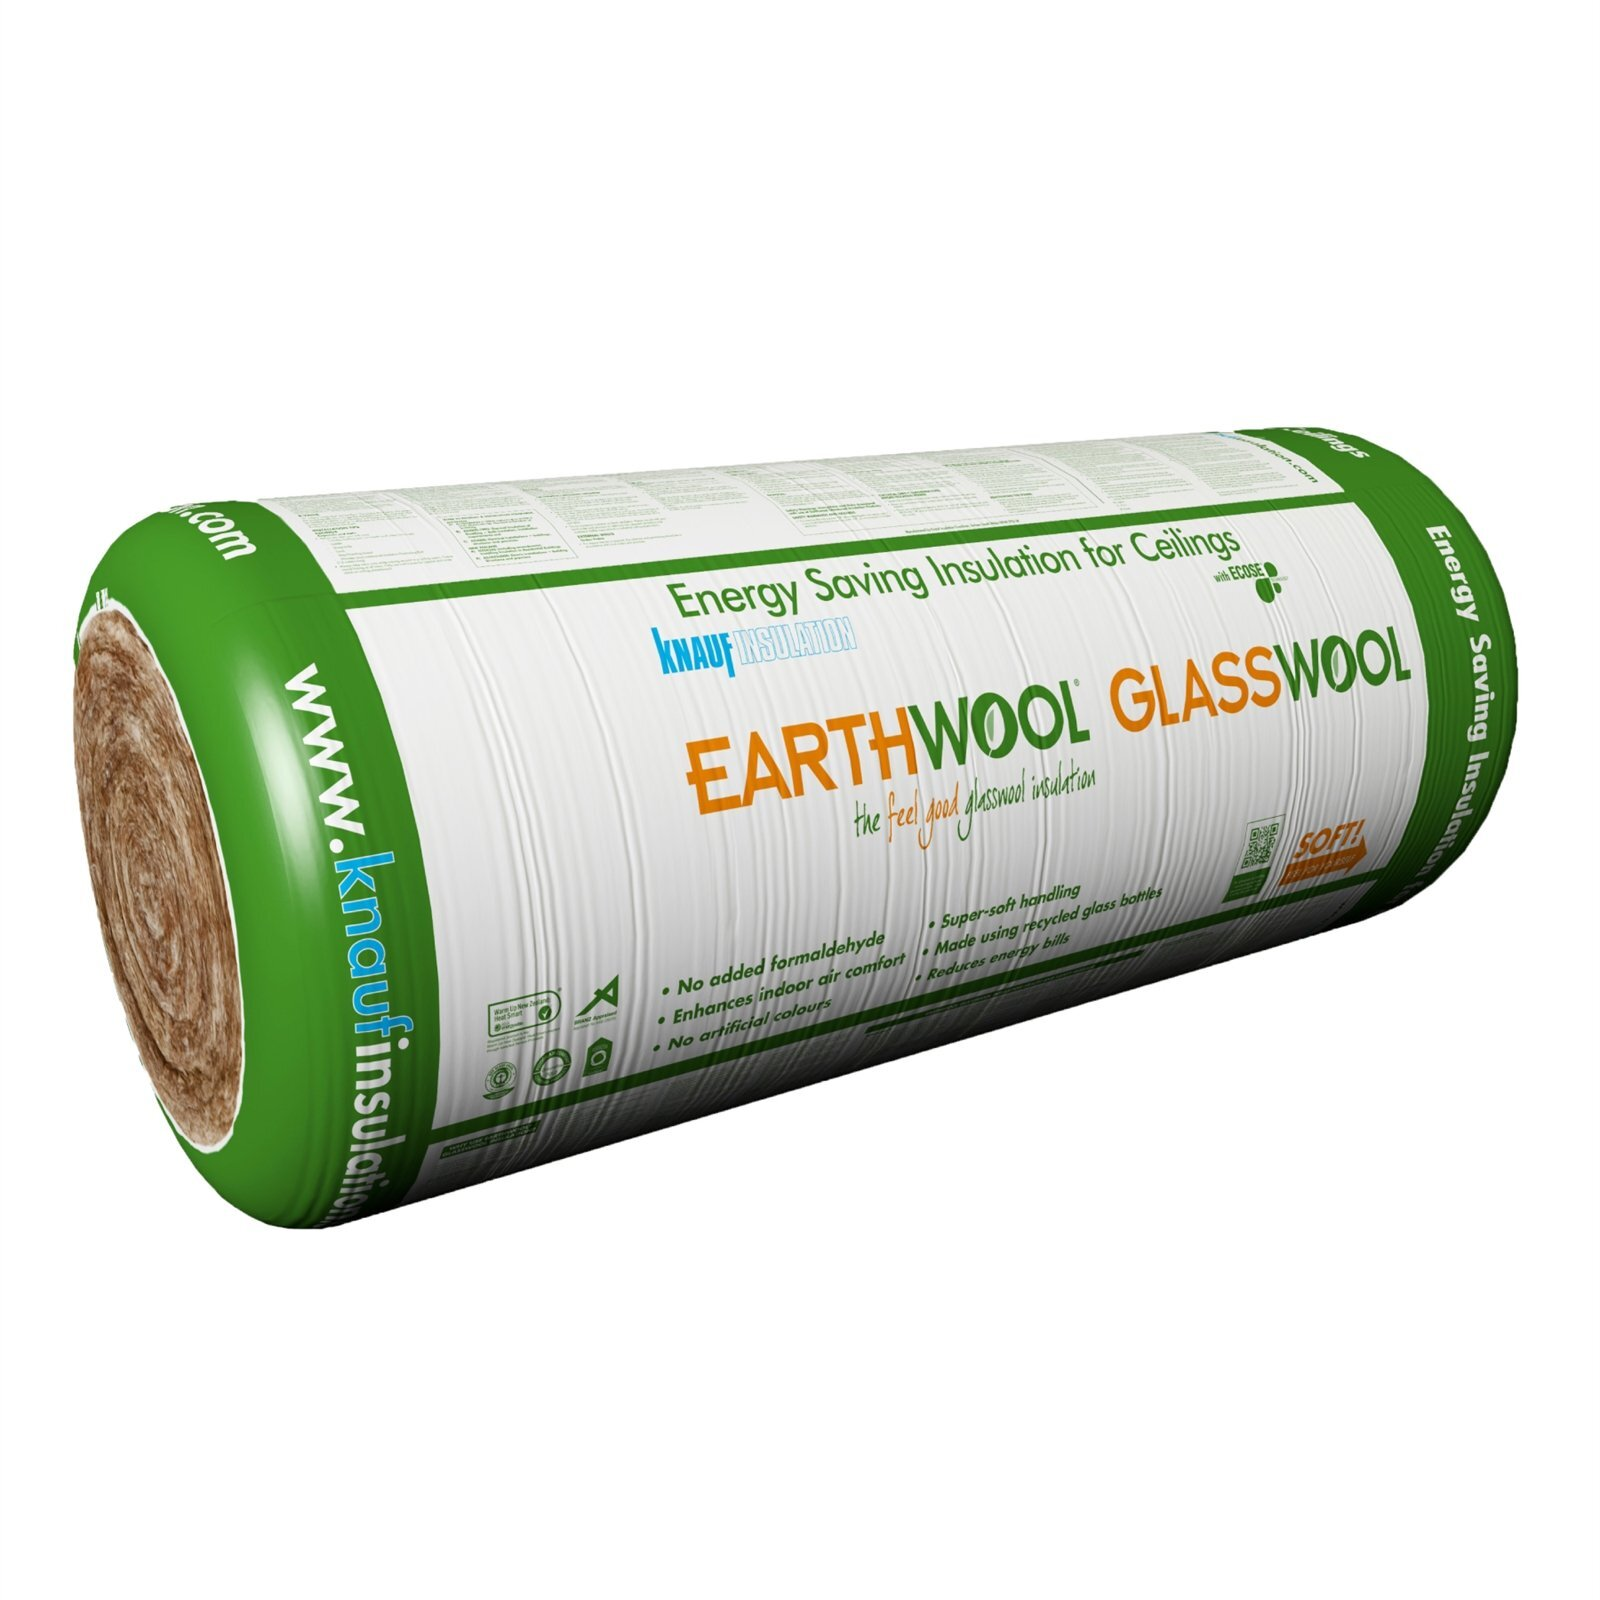 Earthwool glasswool R3.6 150mm x 1200mm x 7000mm 8.4m² Ceiling Insulation Roll - Pack of 1